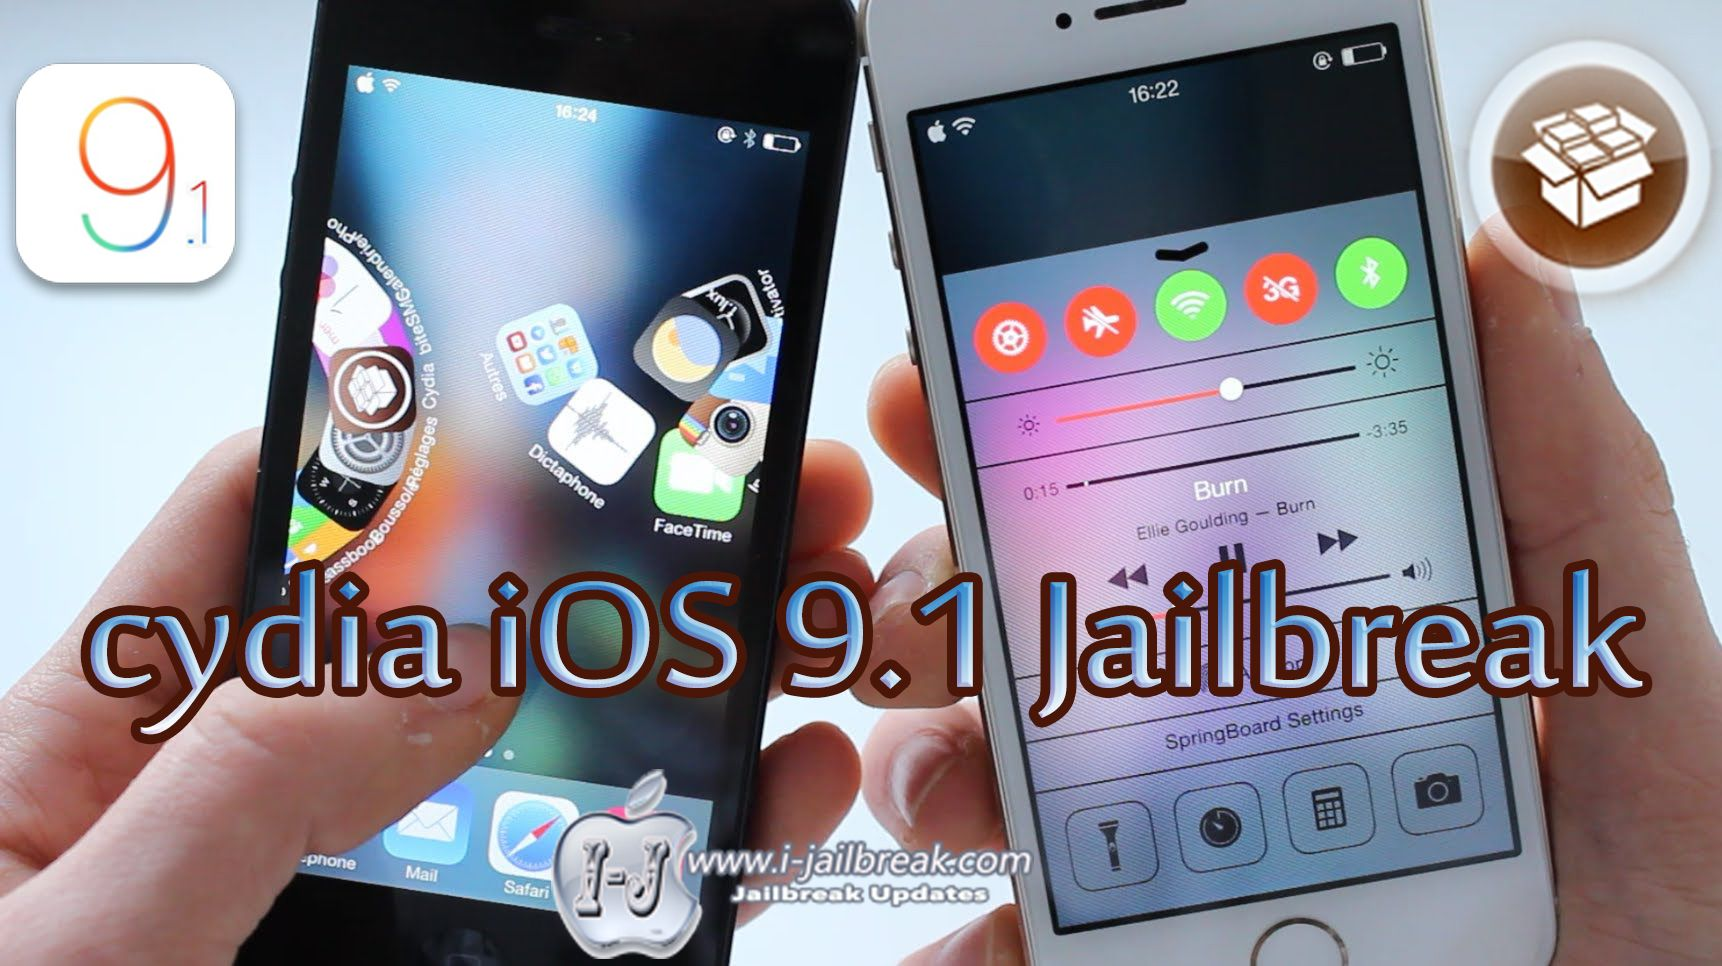 cydia iOS 9.1 Jailbreak Iphone, Ios 7, Iphone ios 7